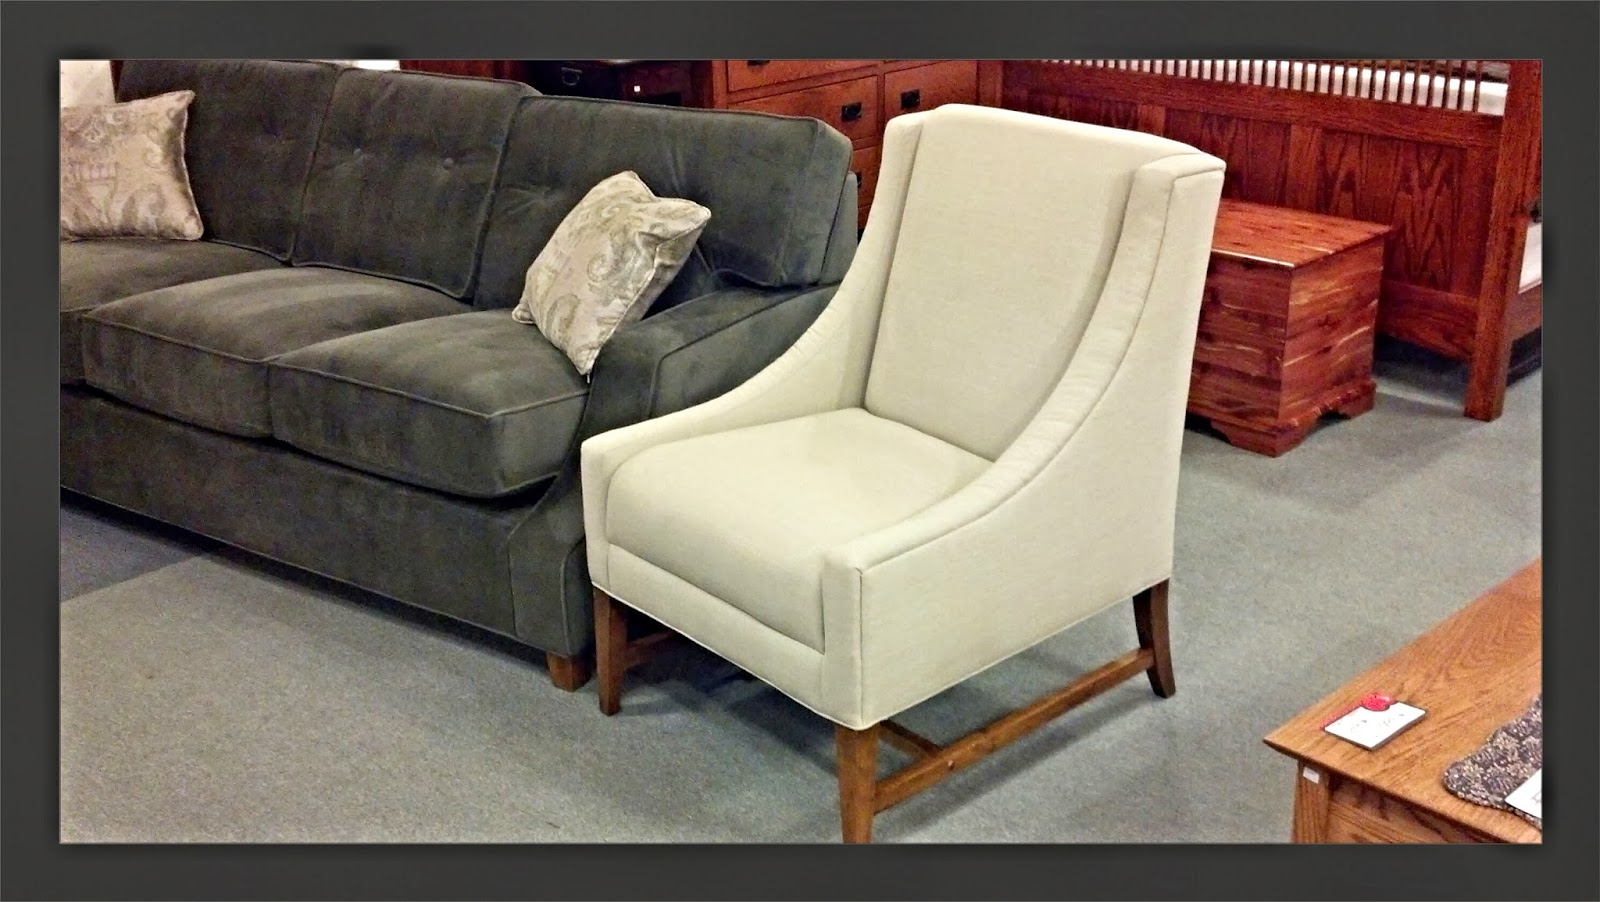 Norwalk Recliners Norwalk Sofa And Chair Rene And Camden By Norwalk